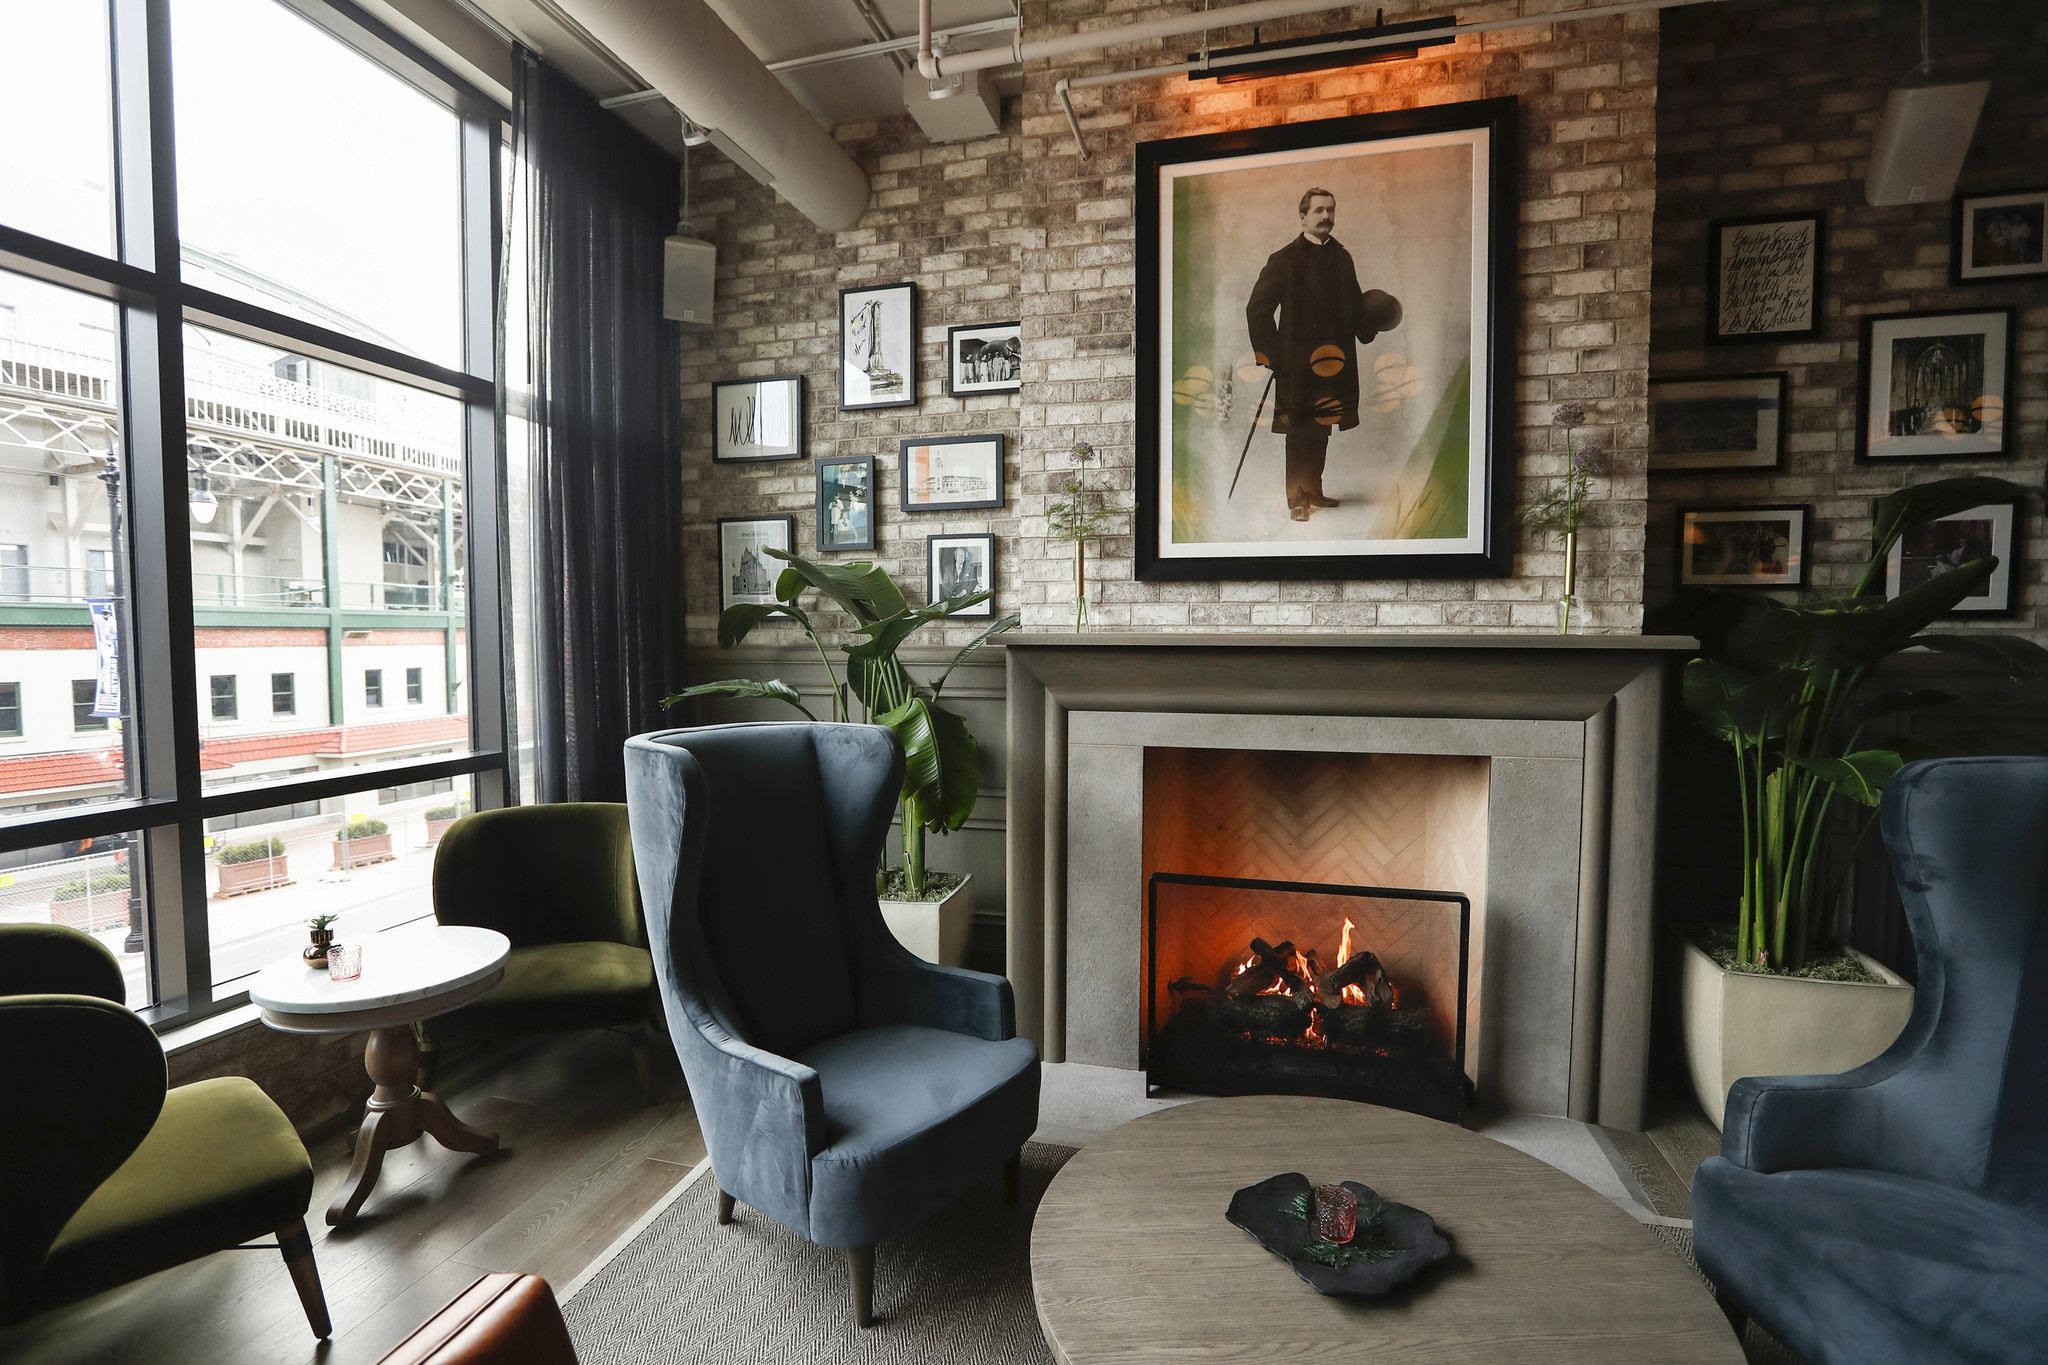 New Hotel Stylishly Complements Wrigley Field, But Canu0027t Match Its  Authenticity   Chicago Tribune